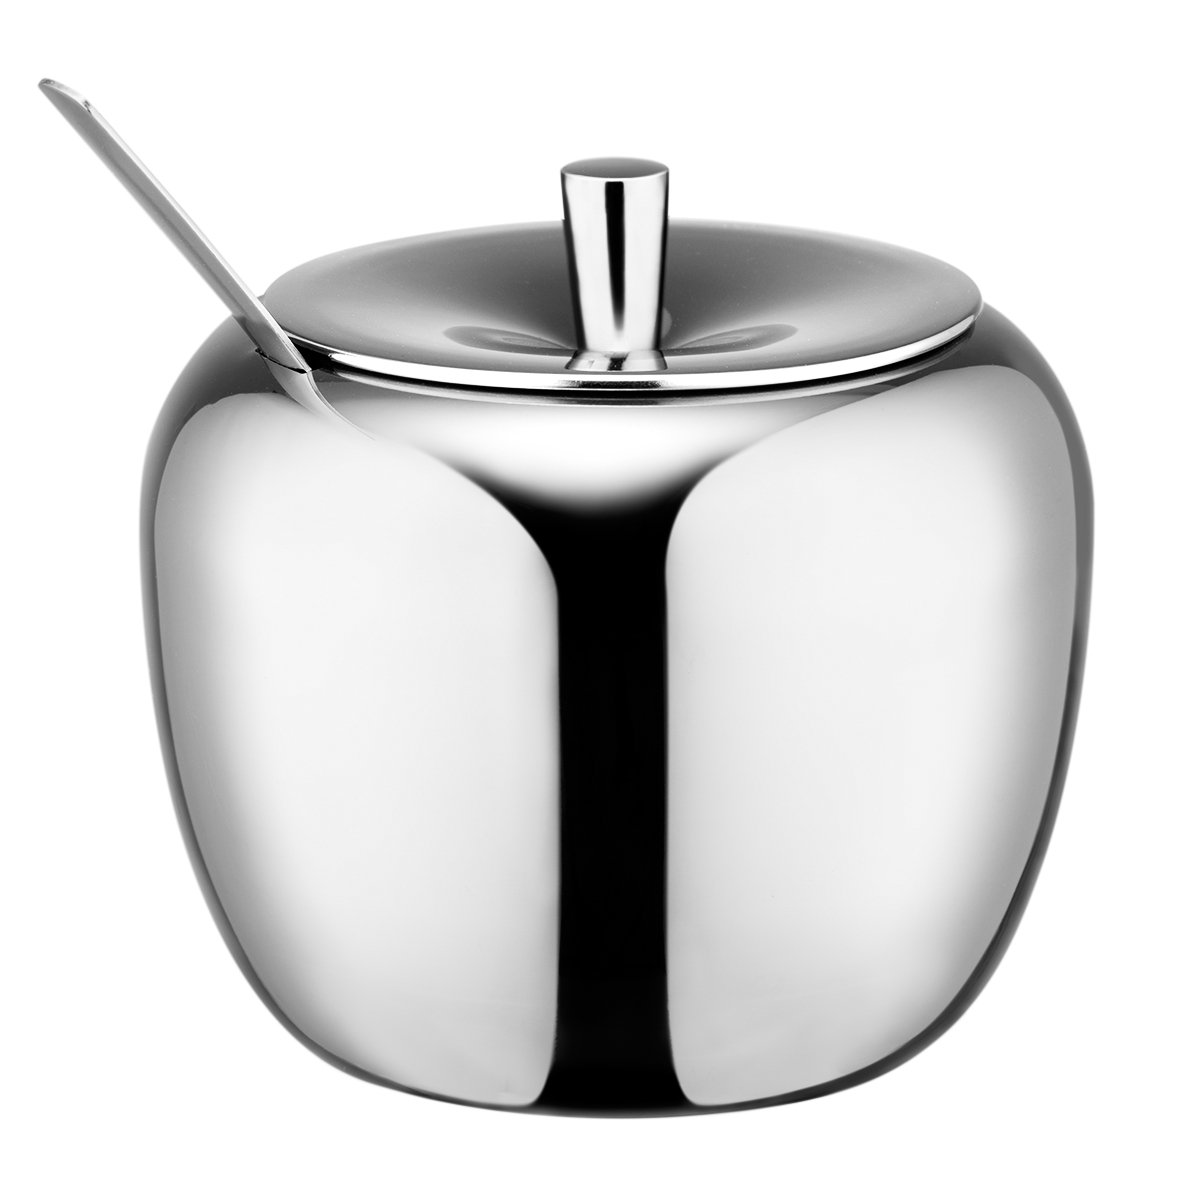 Sugar bowls with lids - Amazon Com Hardnok Stainless Steel Sugar Bowl With Lid And Sugar Spoon 16 9 Ounces 500 Milliliter Home Kitchen